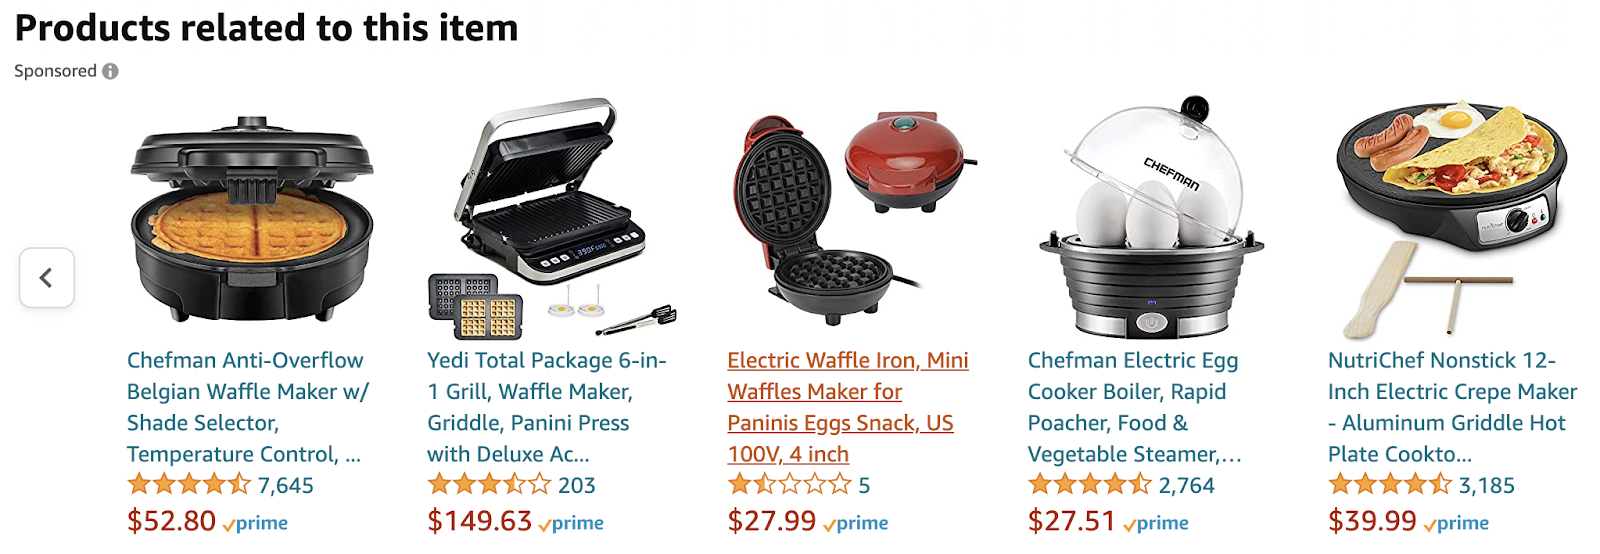 Related products to the selected items are waffle makers, egg-boiler, and crepe makers.